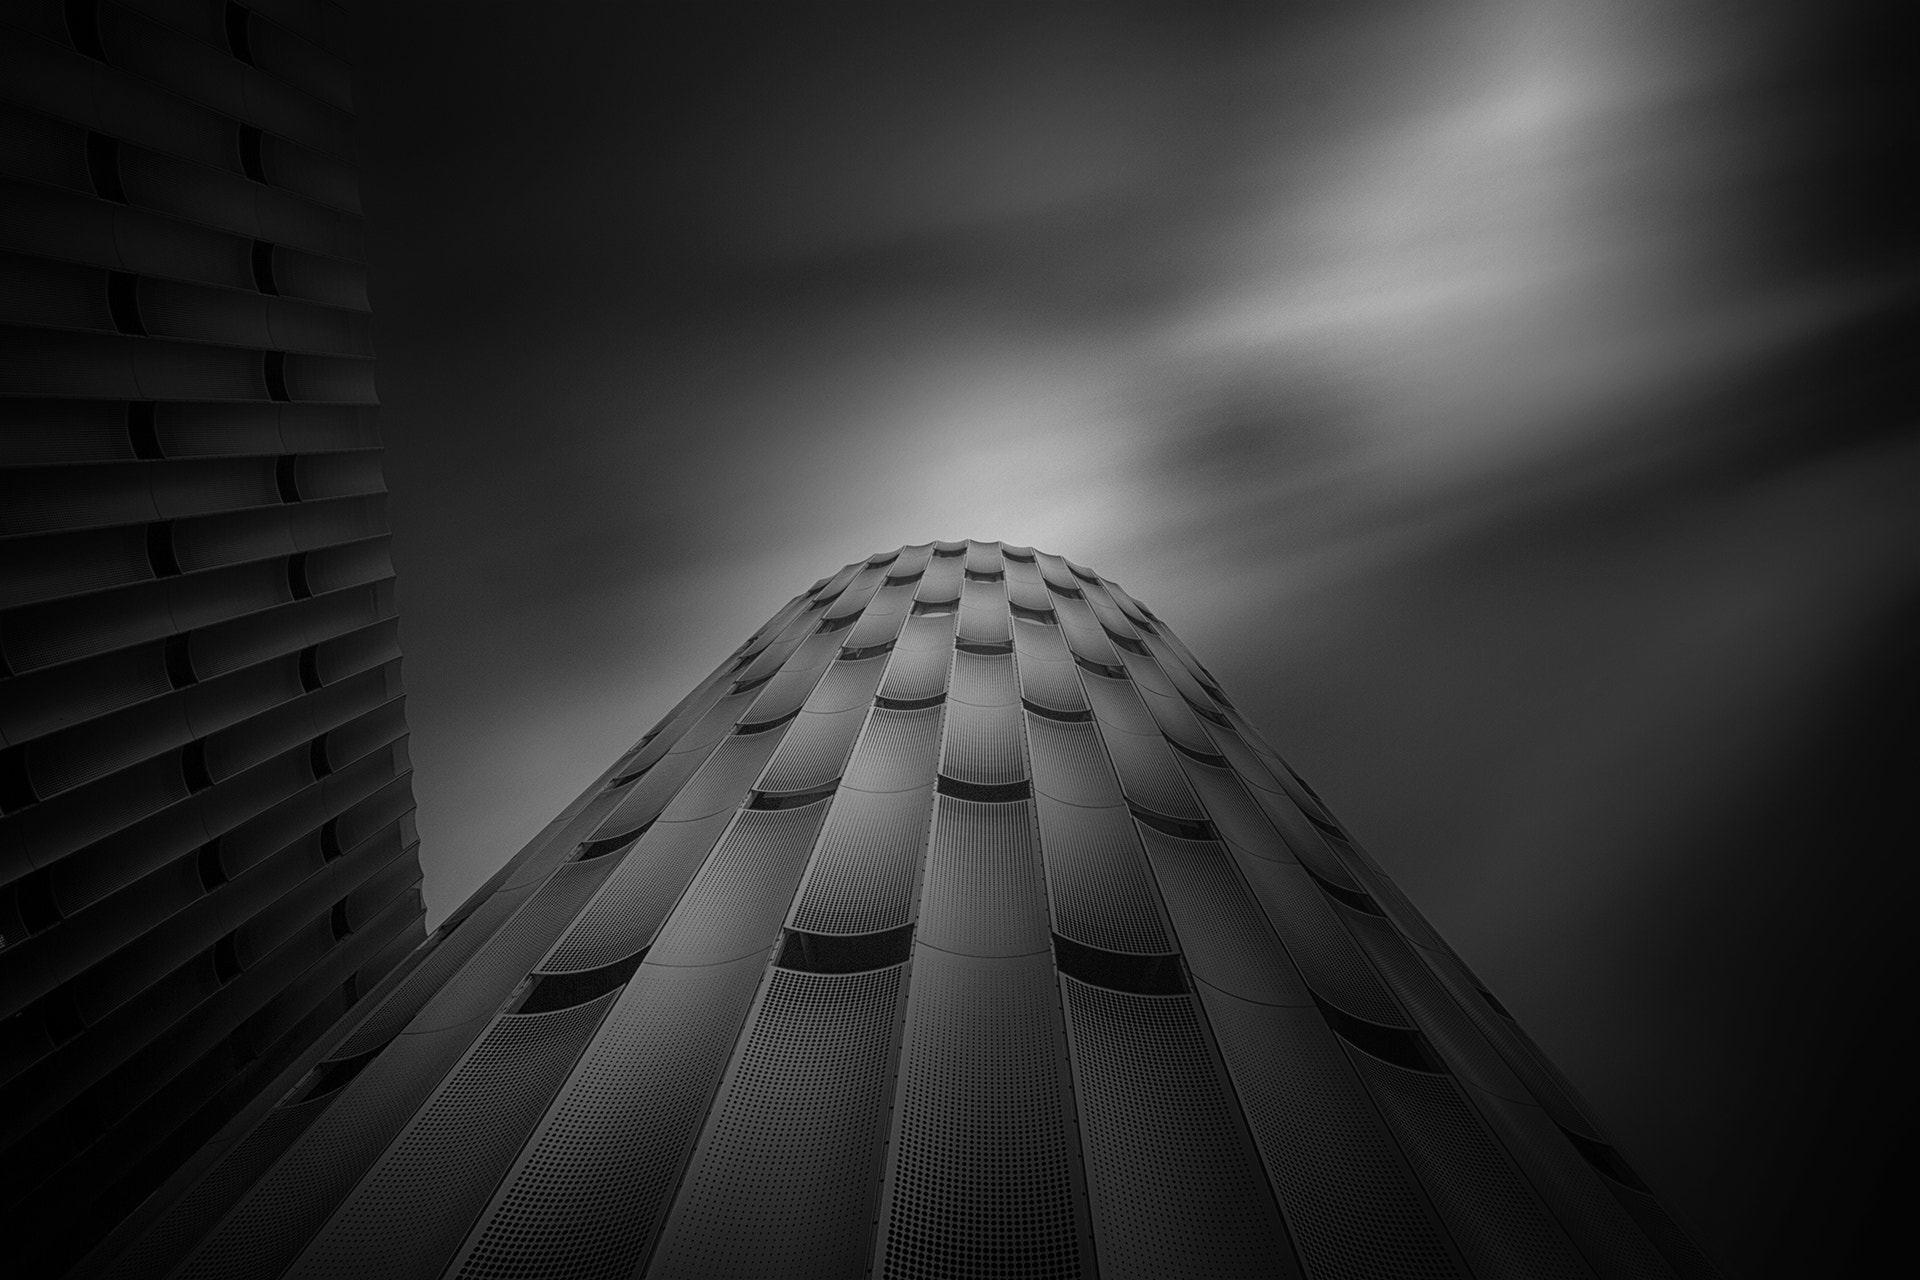 Photograph Future by Kees Smans on 500px